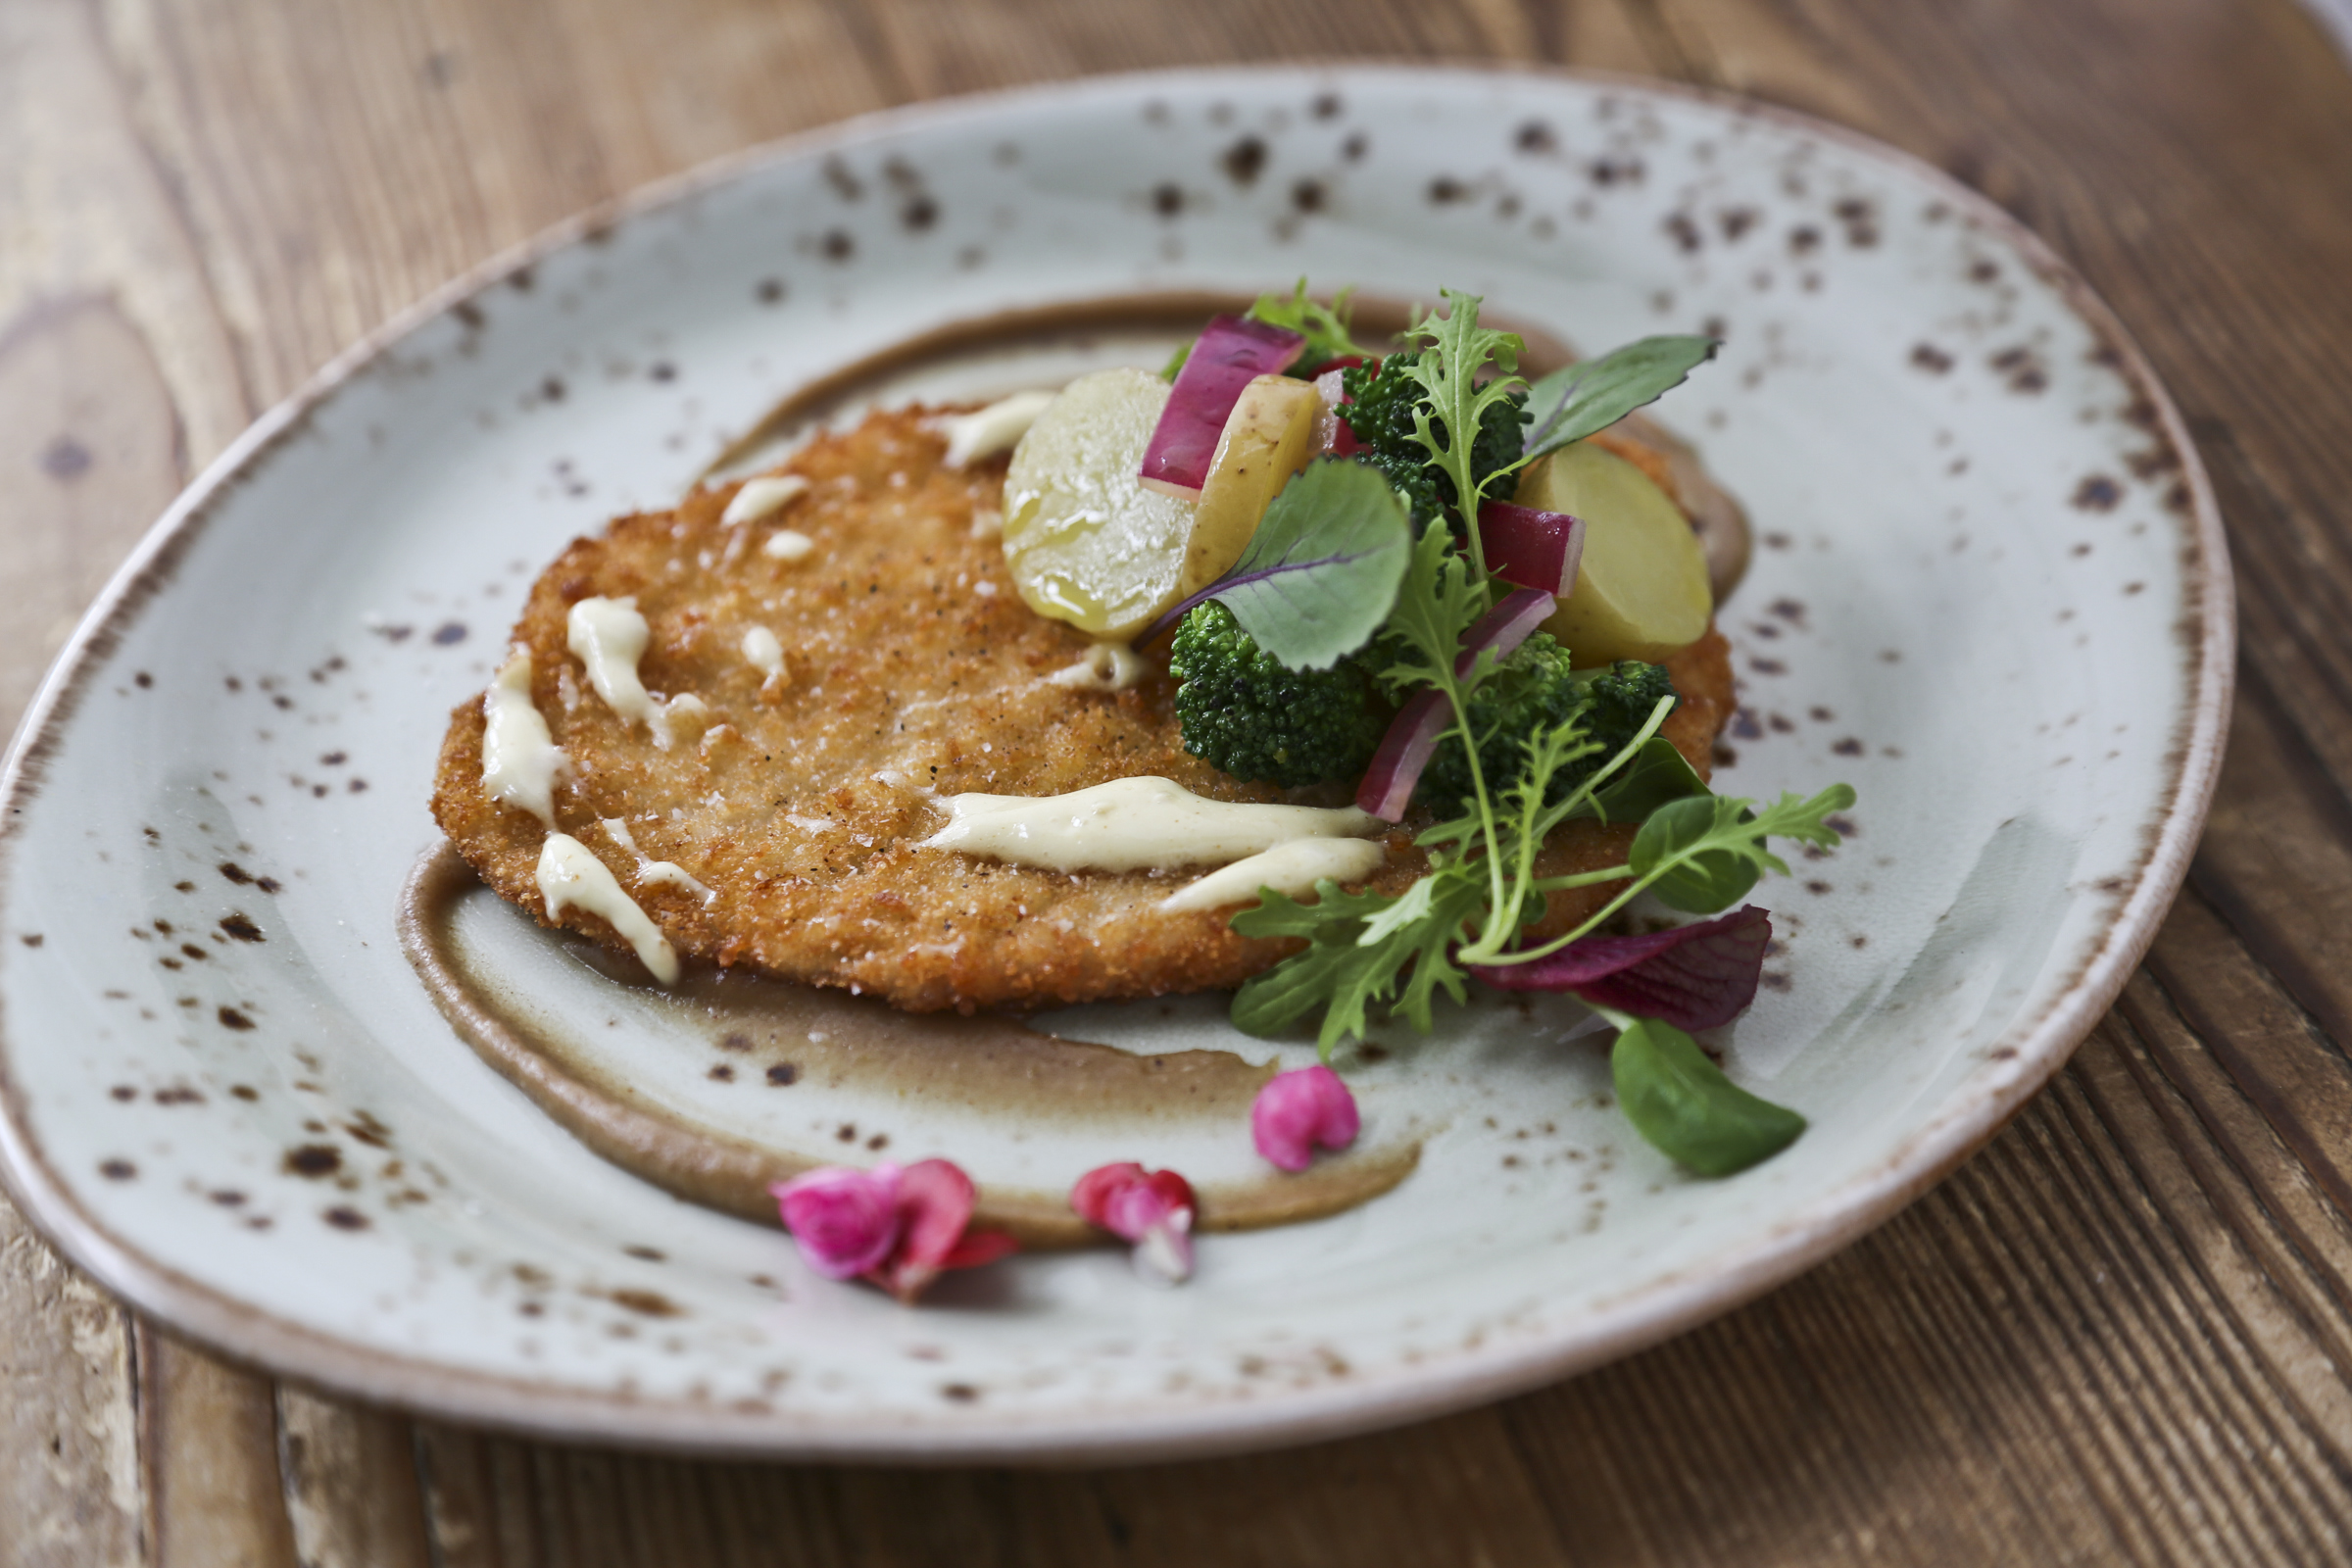 Pork Schnitzel with Charred Broccoli and Spiced Apple